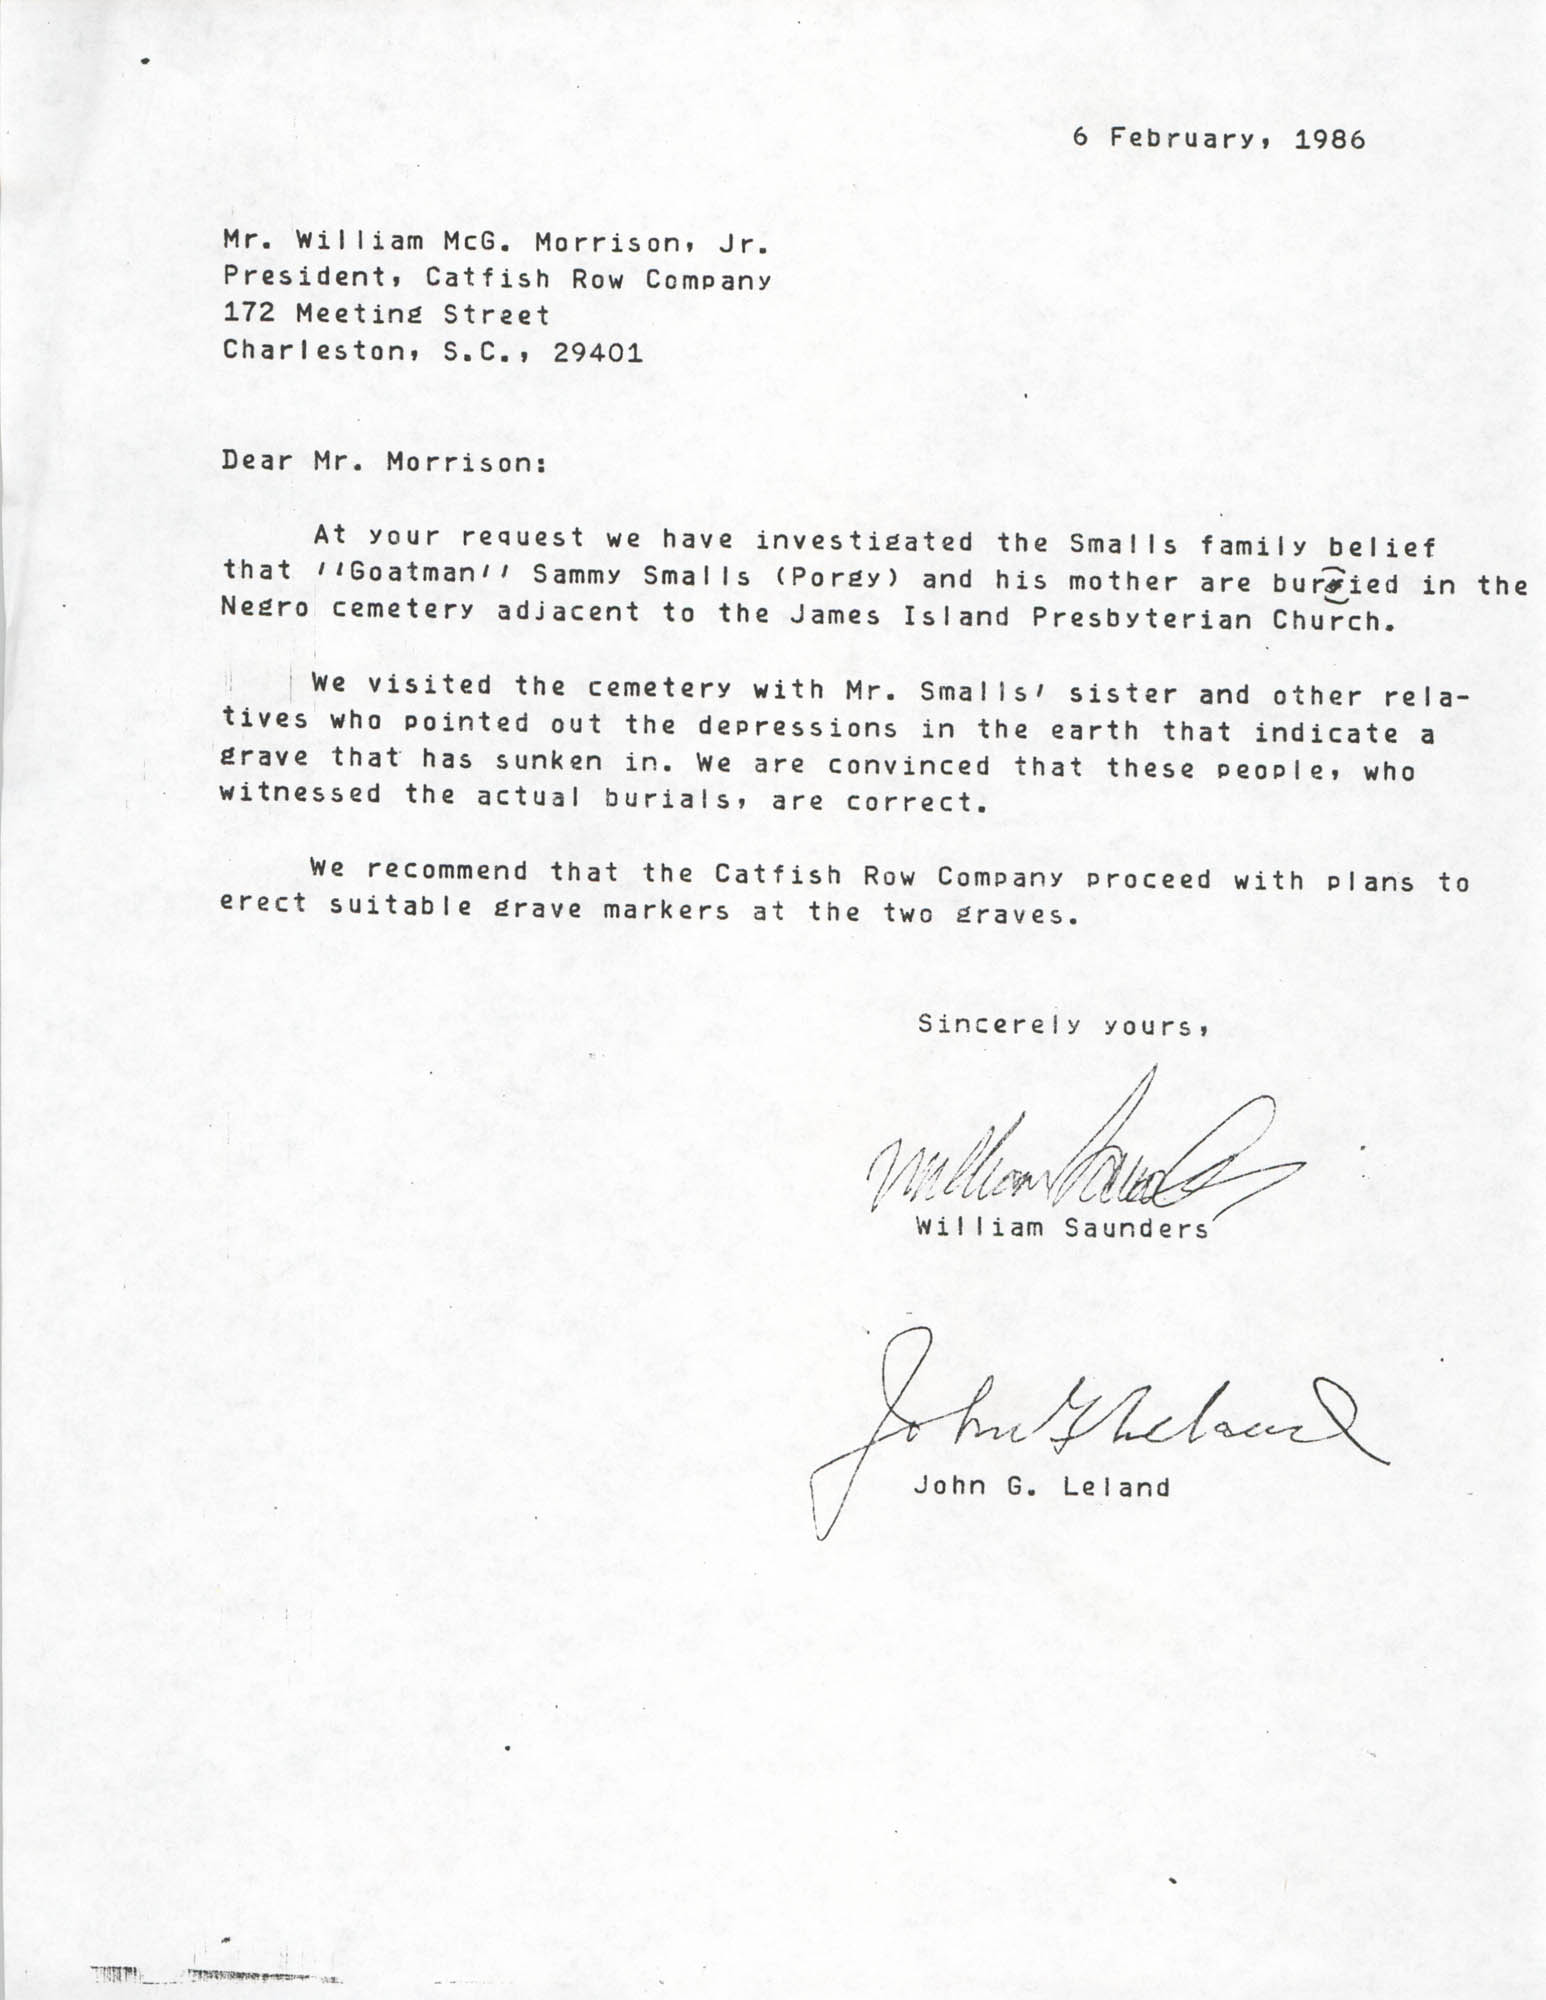 Letter from William Saunders and John G. Leland to William Morrison, Jr., February 6, 1986